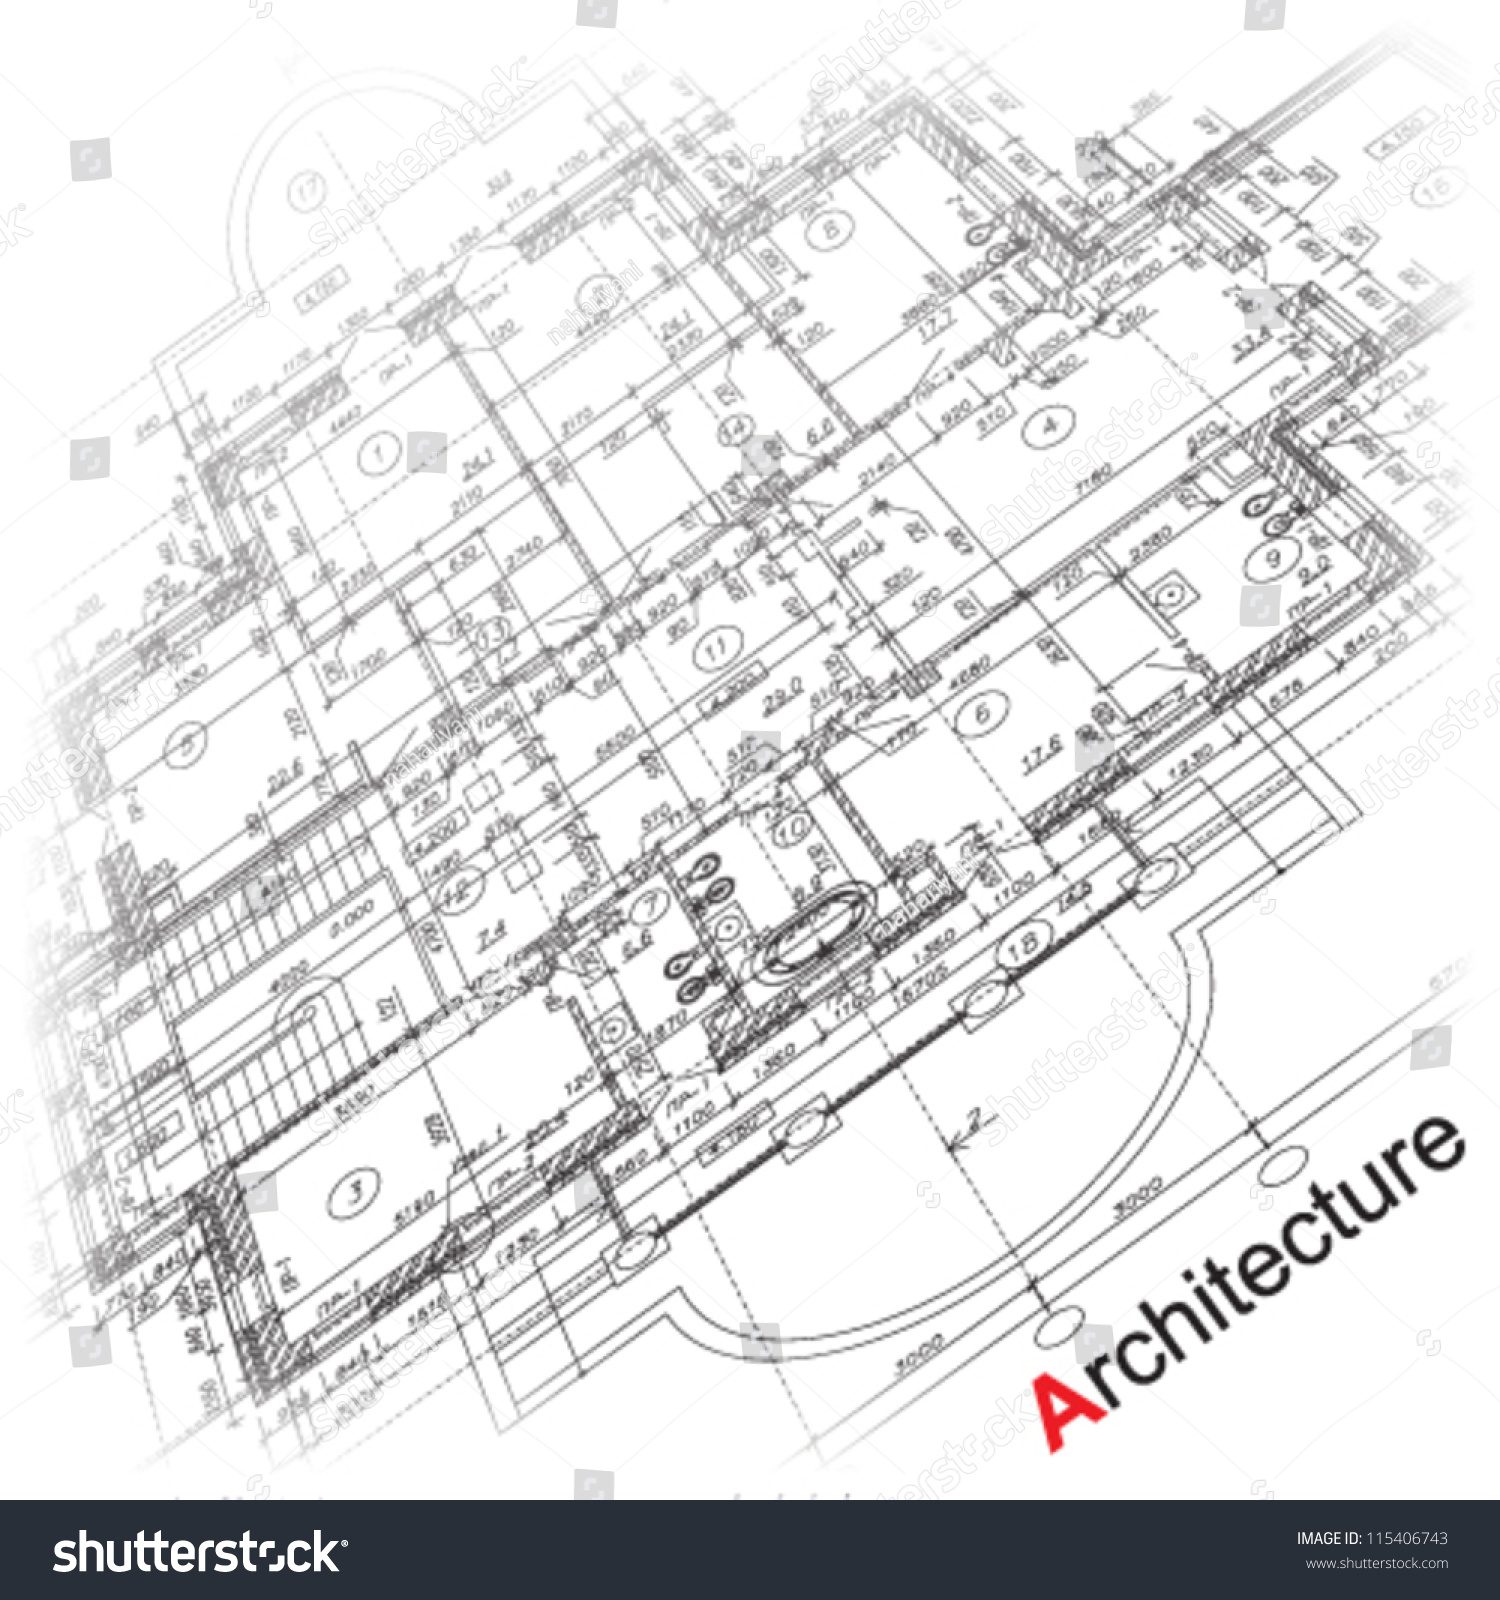 Abstract Architectural Background Part Of Architectural Project Architectural Plan Technical Project Drawing